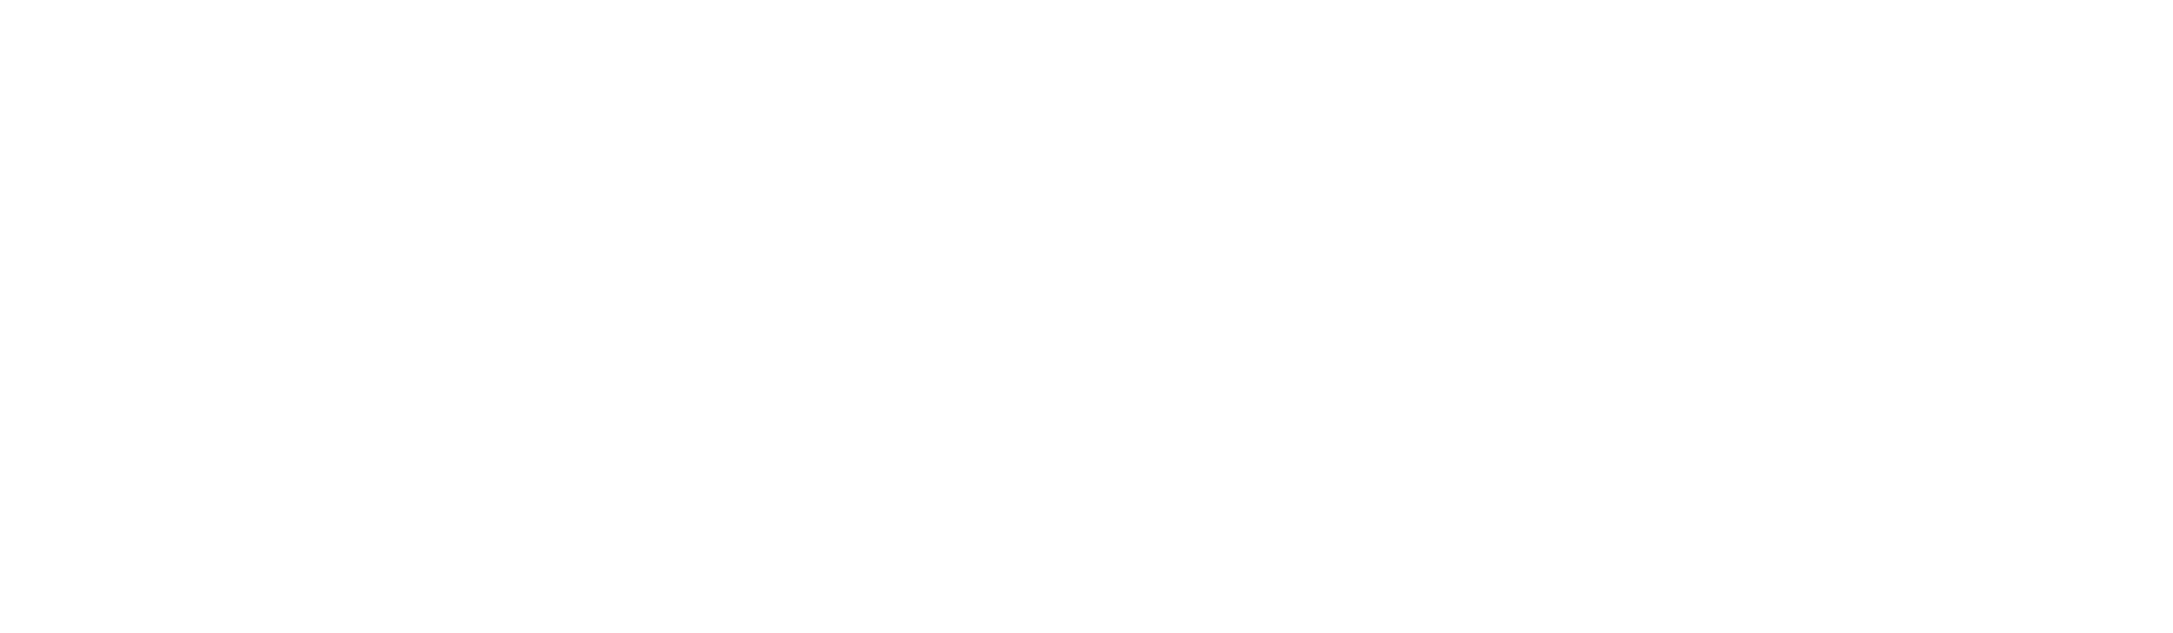 Car Modify Wonder - Official Website and Distributor of Car Modify ...